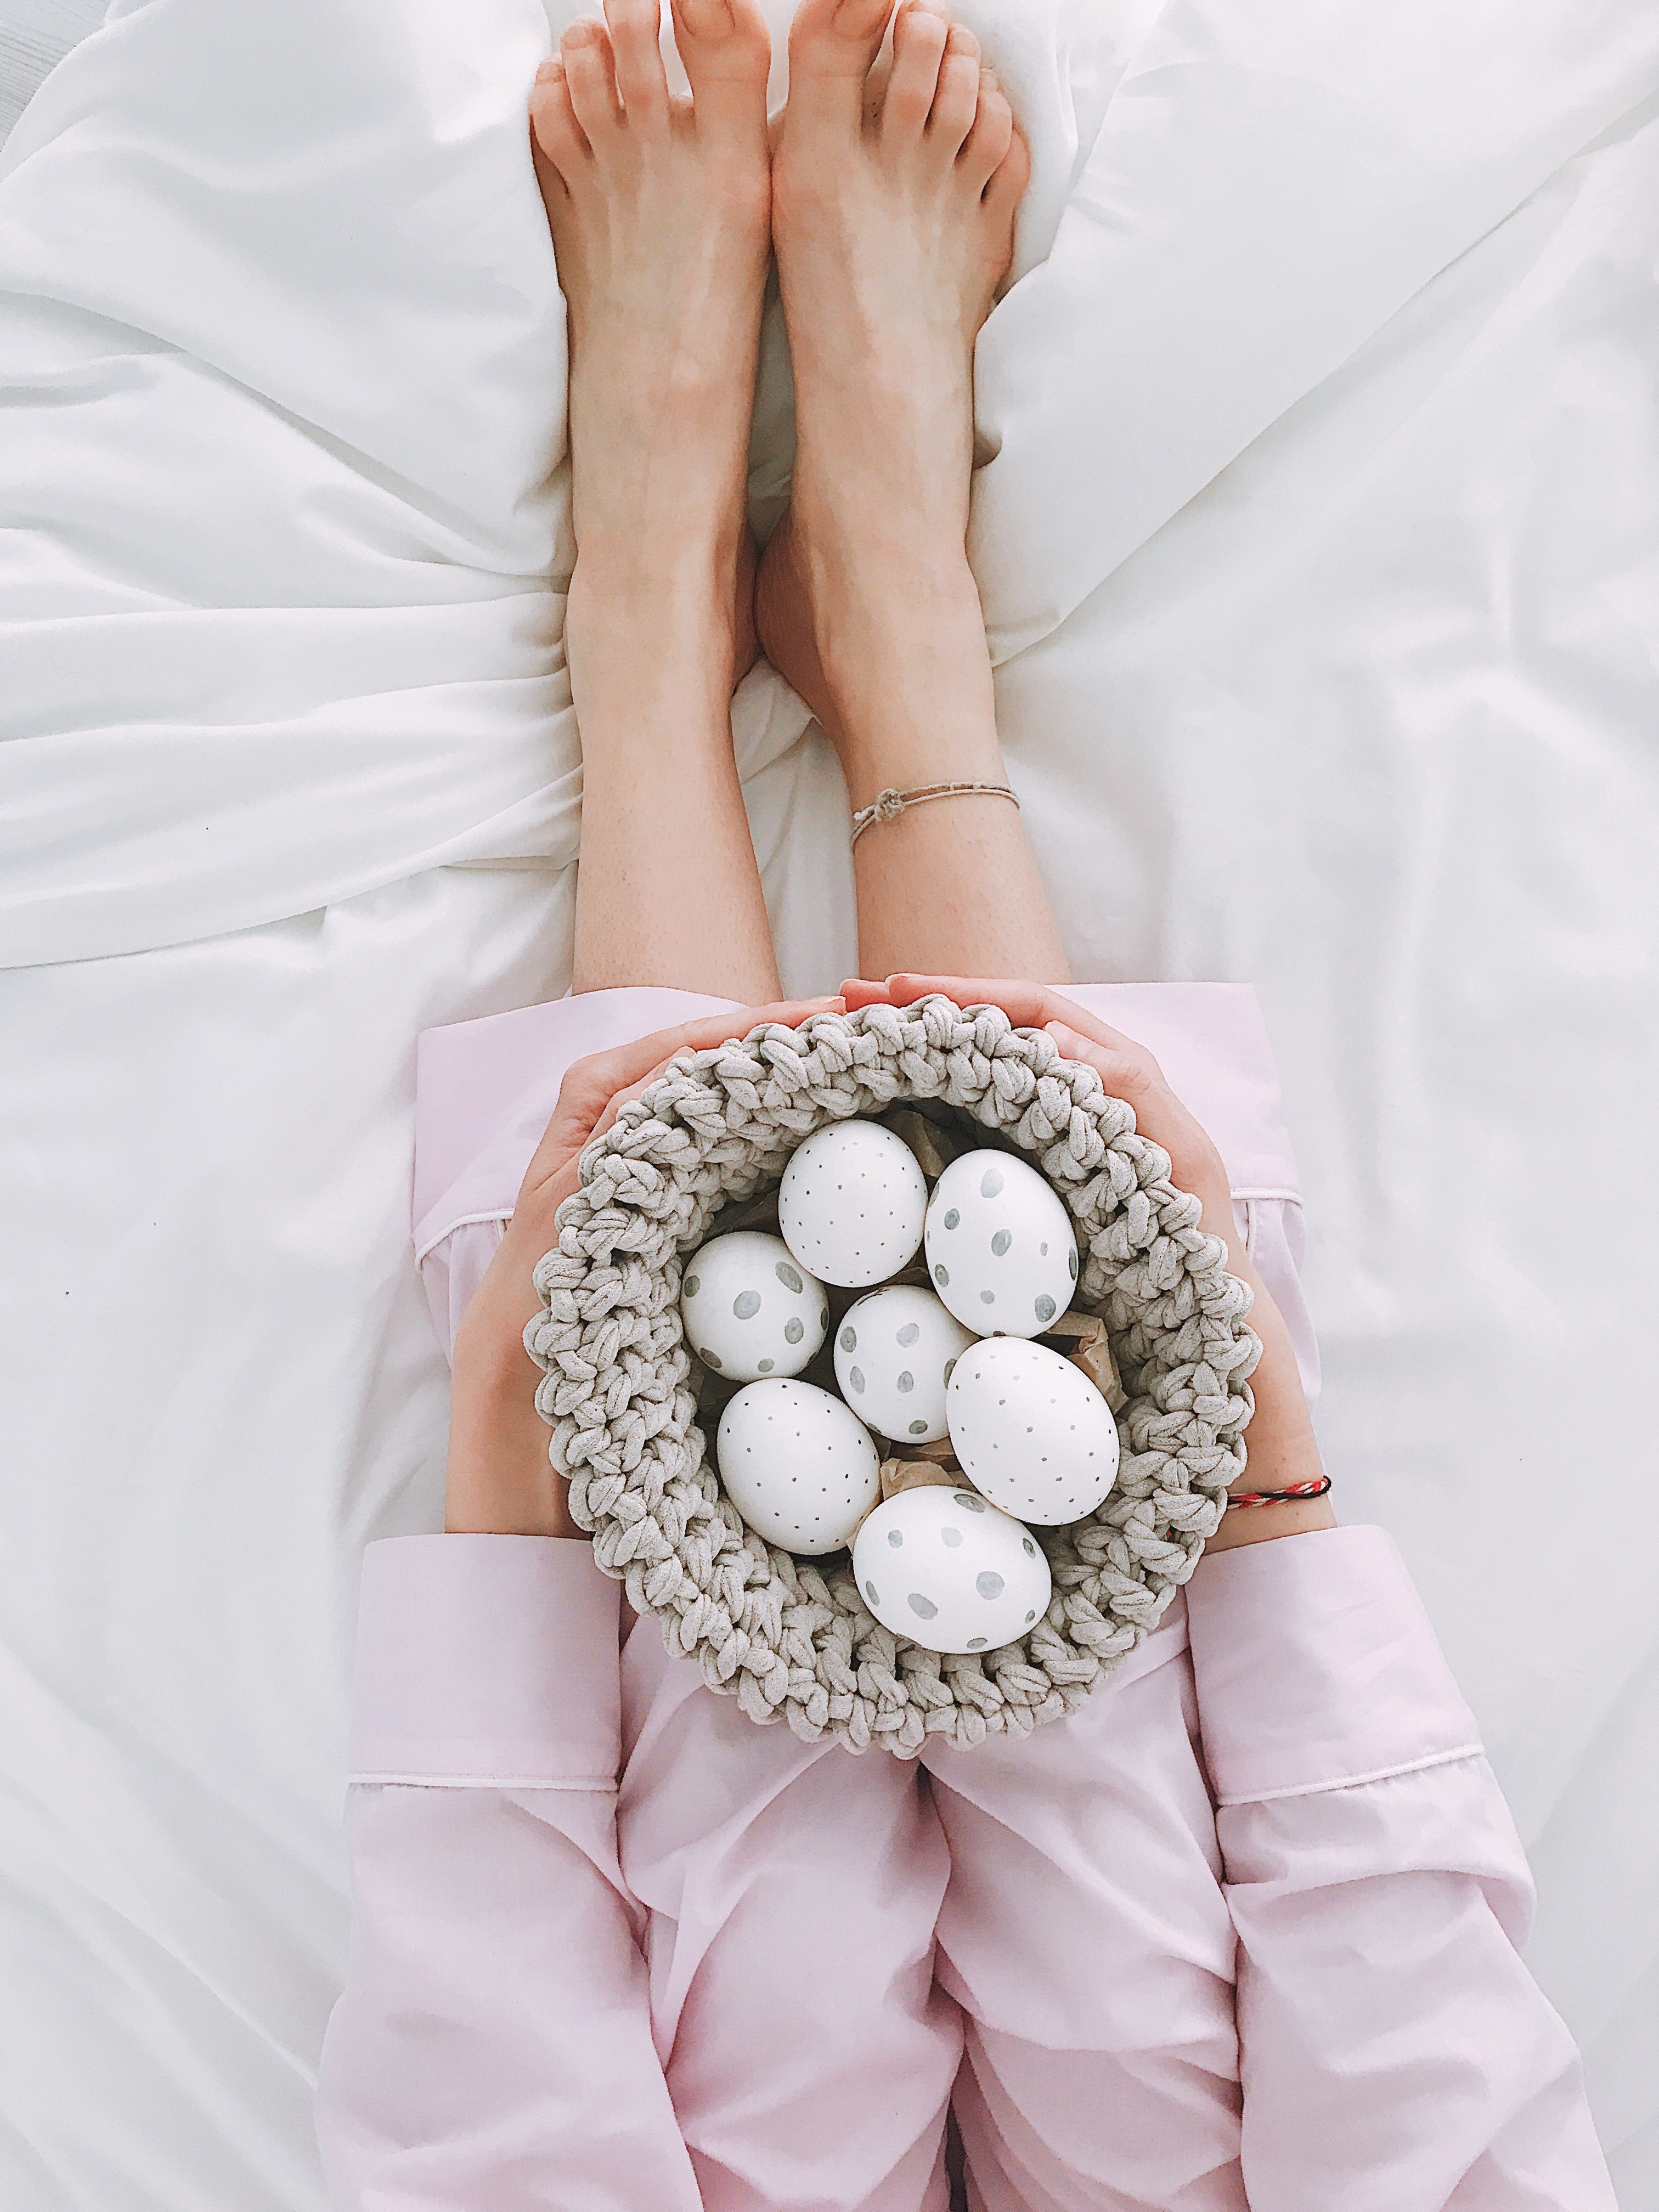 Woman Holding Gray Crochet Bowl With Seven Painted Eggs, Adult, Hands, Style, Relaxation, HQ Photo